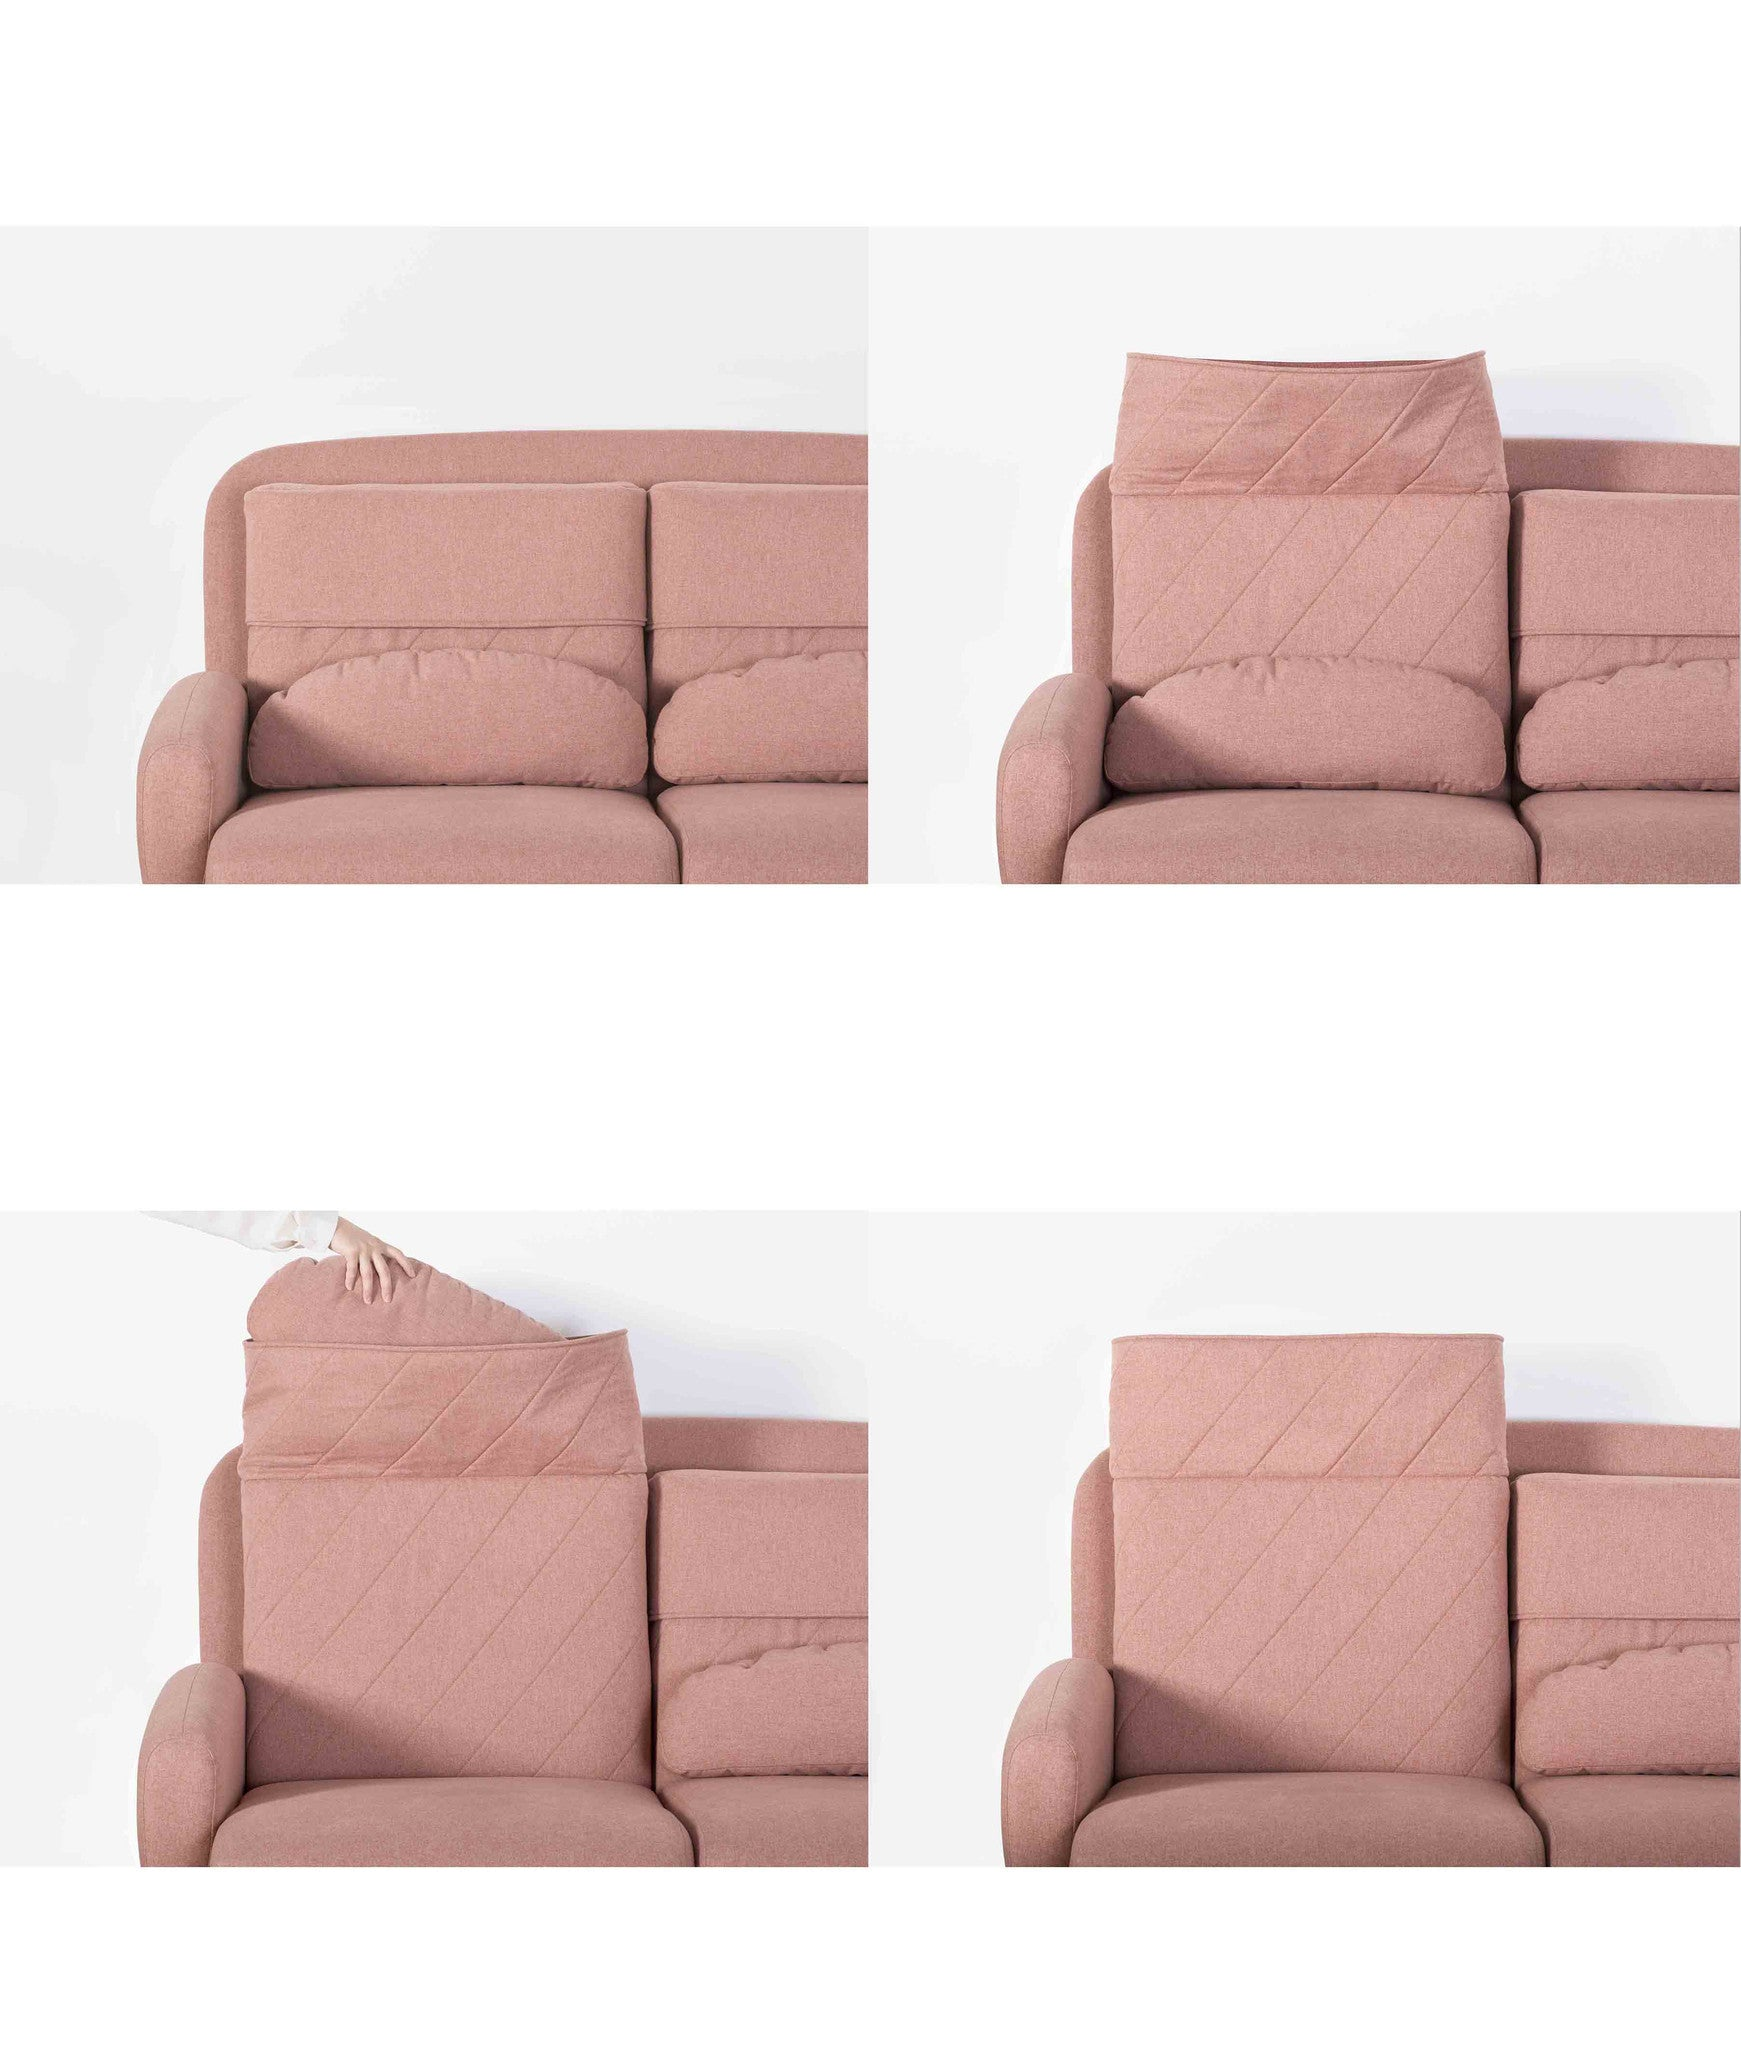 TURTLENECK SOFA - TRIPLE peach